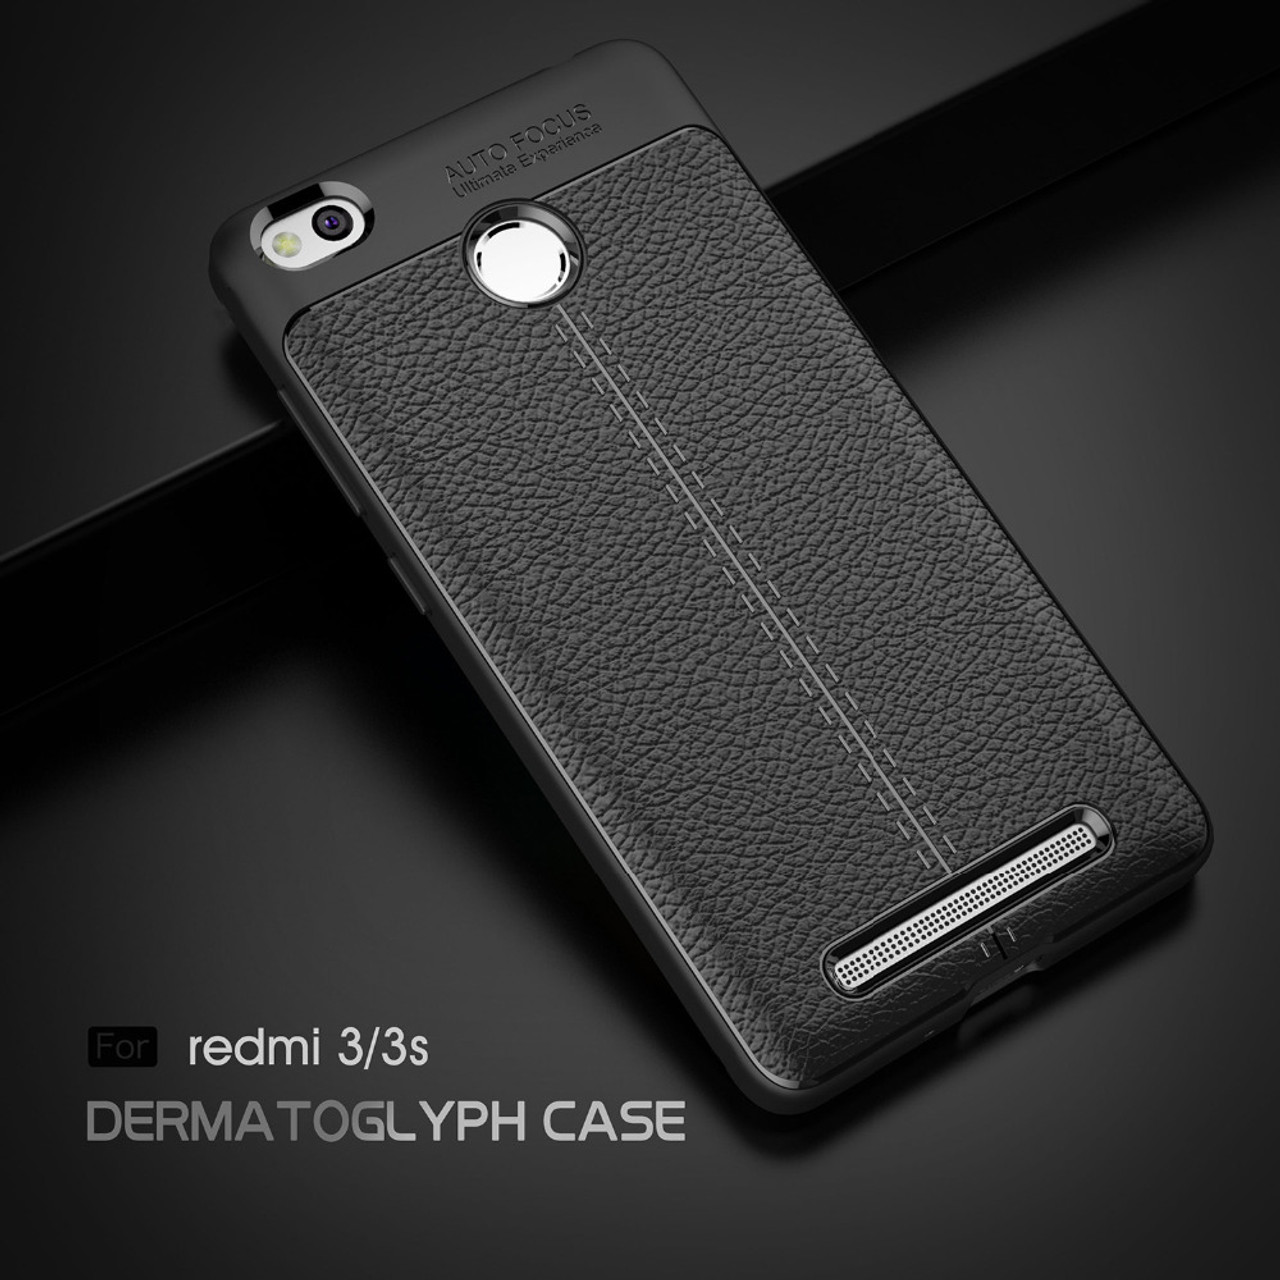 buy popular abfe8 92097 VOONGSON For Xiaomi Redmi 3 Pro Case Phone Protector Back Cover ShockProof  TPU Soft Silicone Case For Xiaomi Redmi 3s Prime 3 S